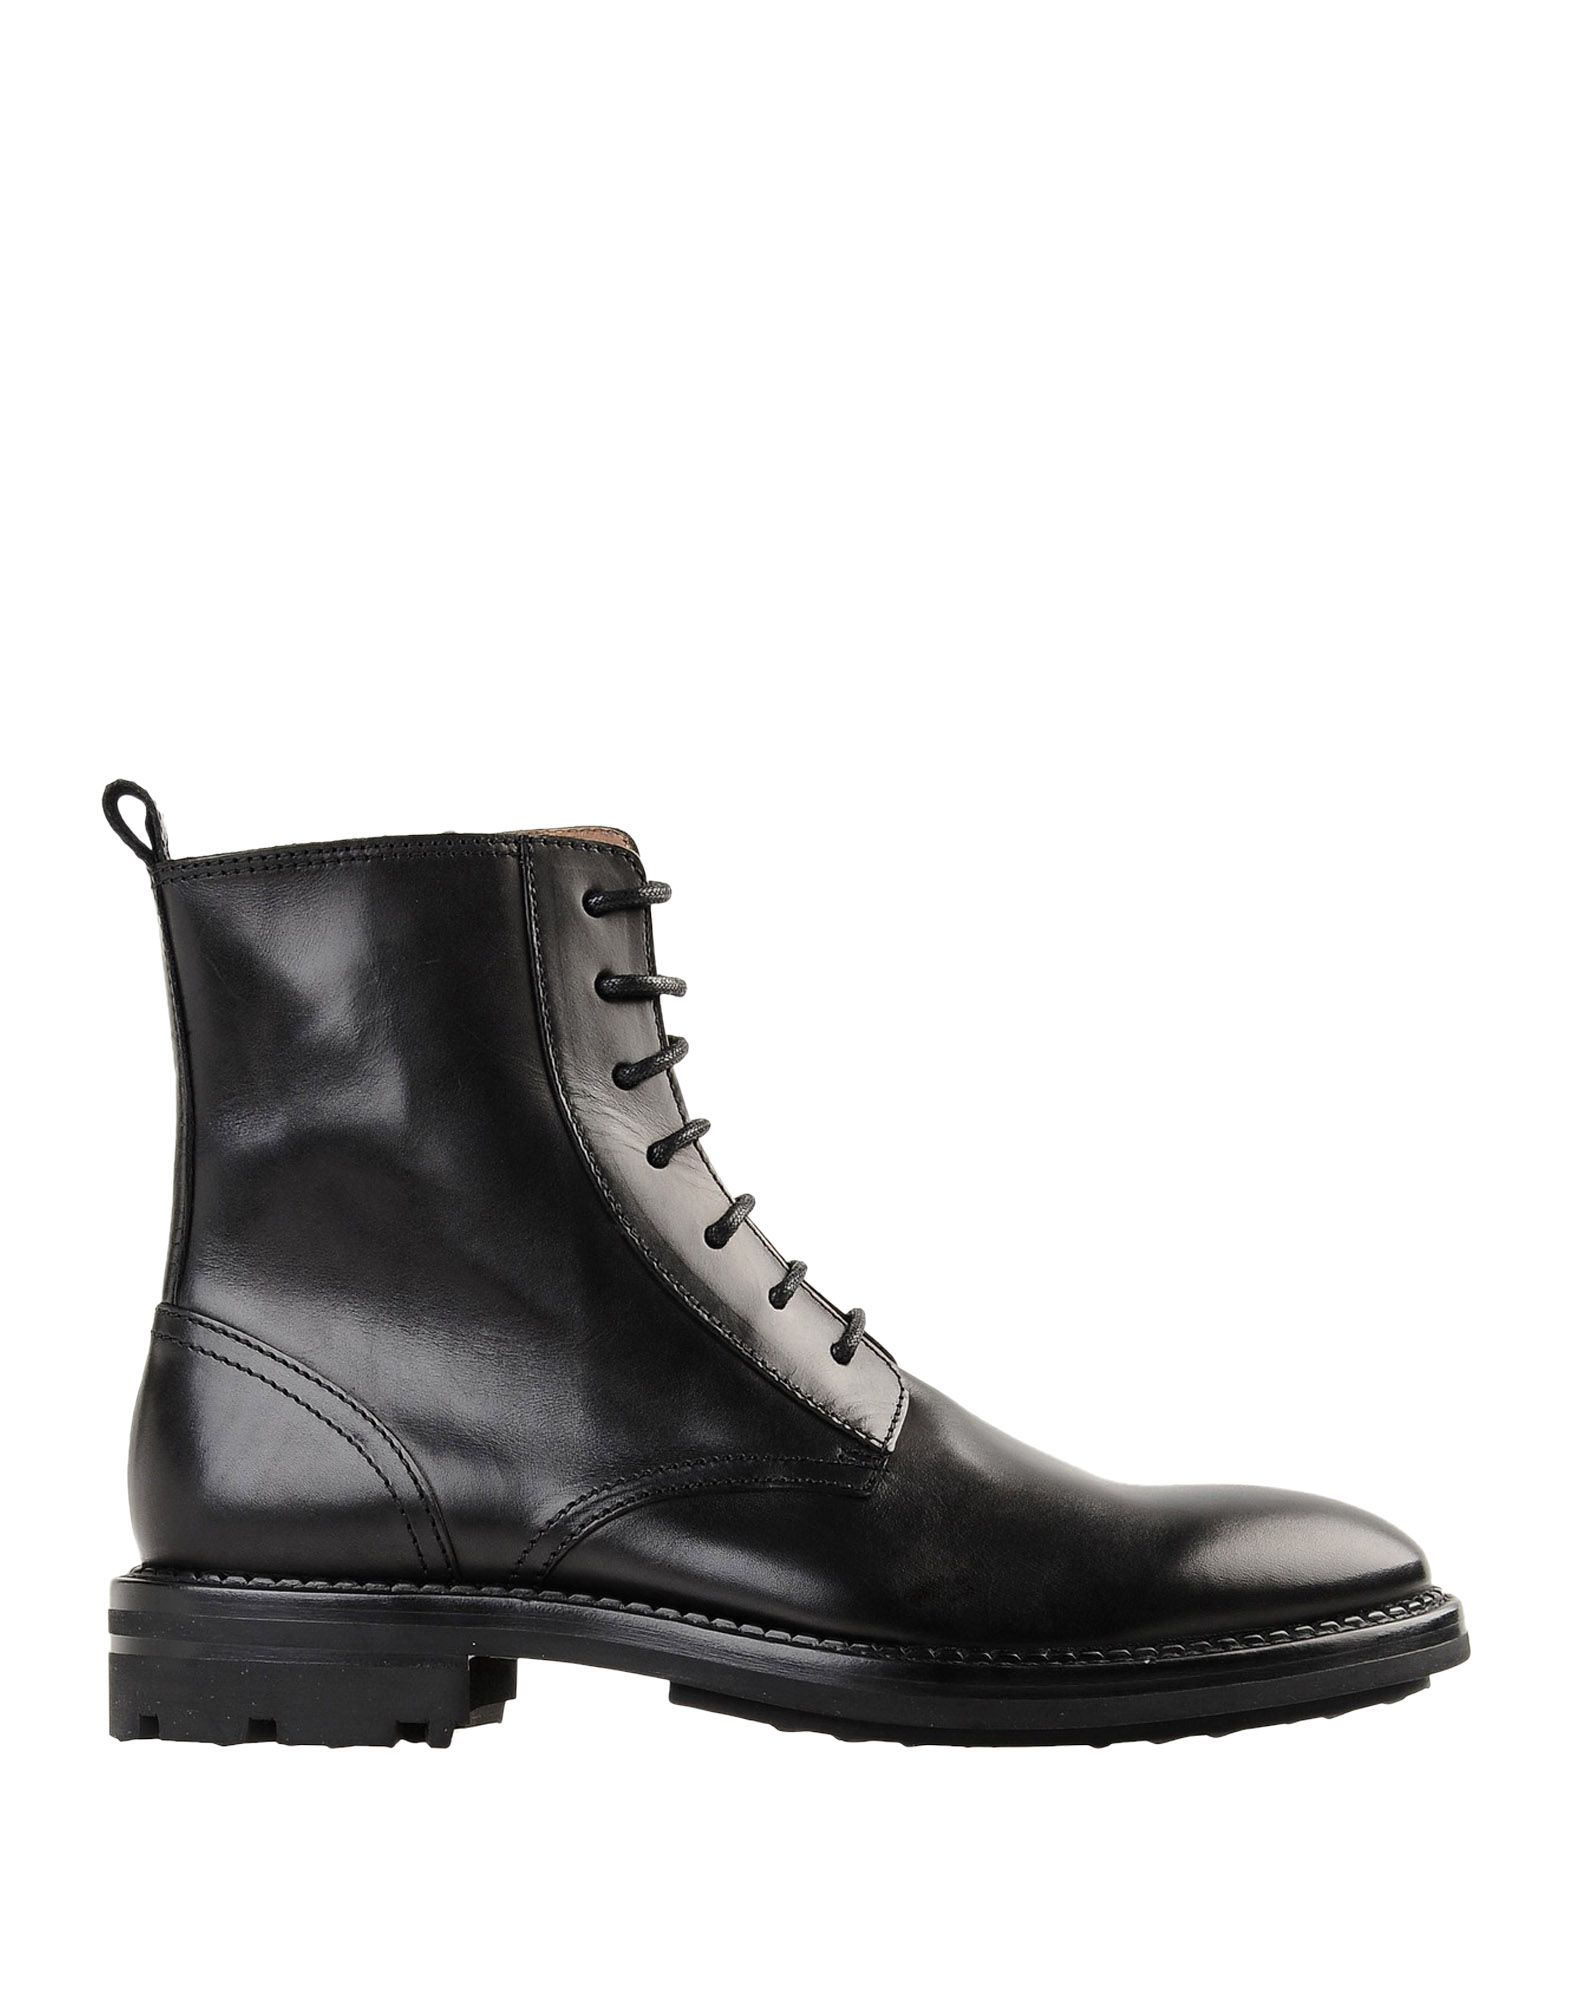 Kenzo Bottes Main - Boots - on Men Kenzo Boots online on -  Canada - 11545199VJ 34bc61